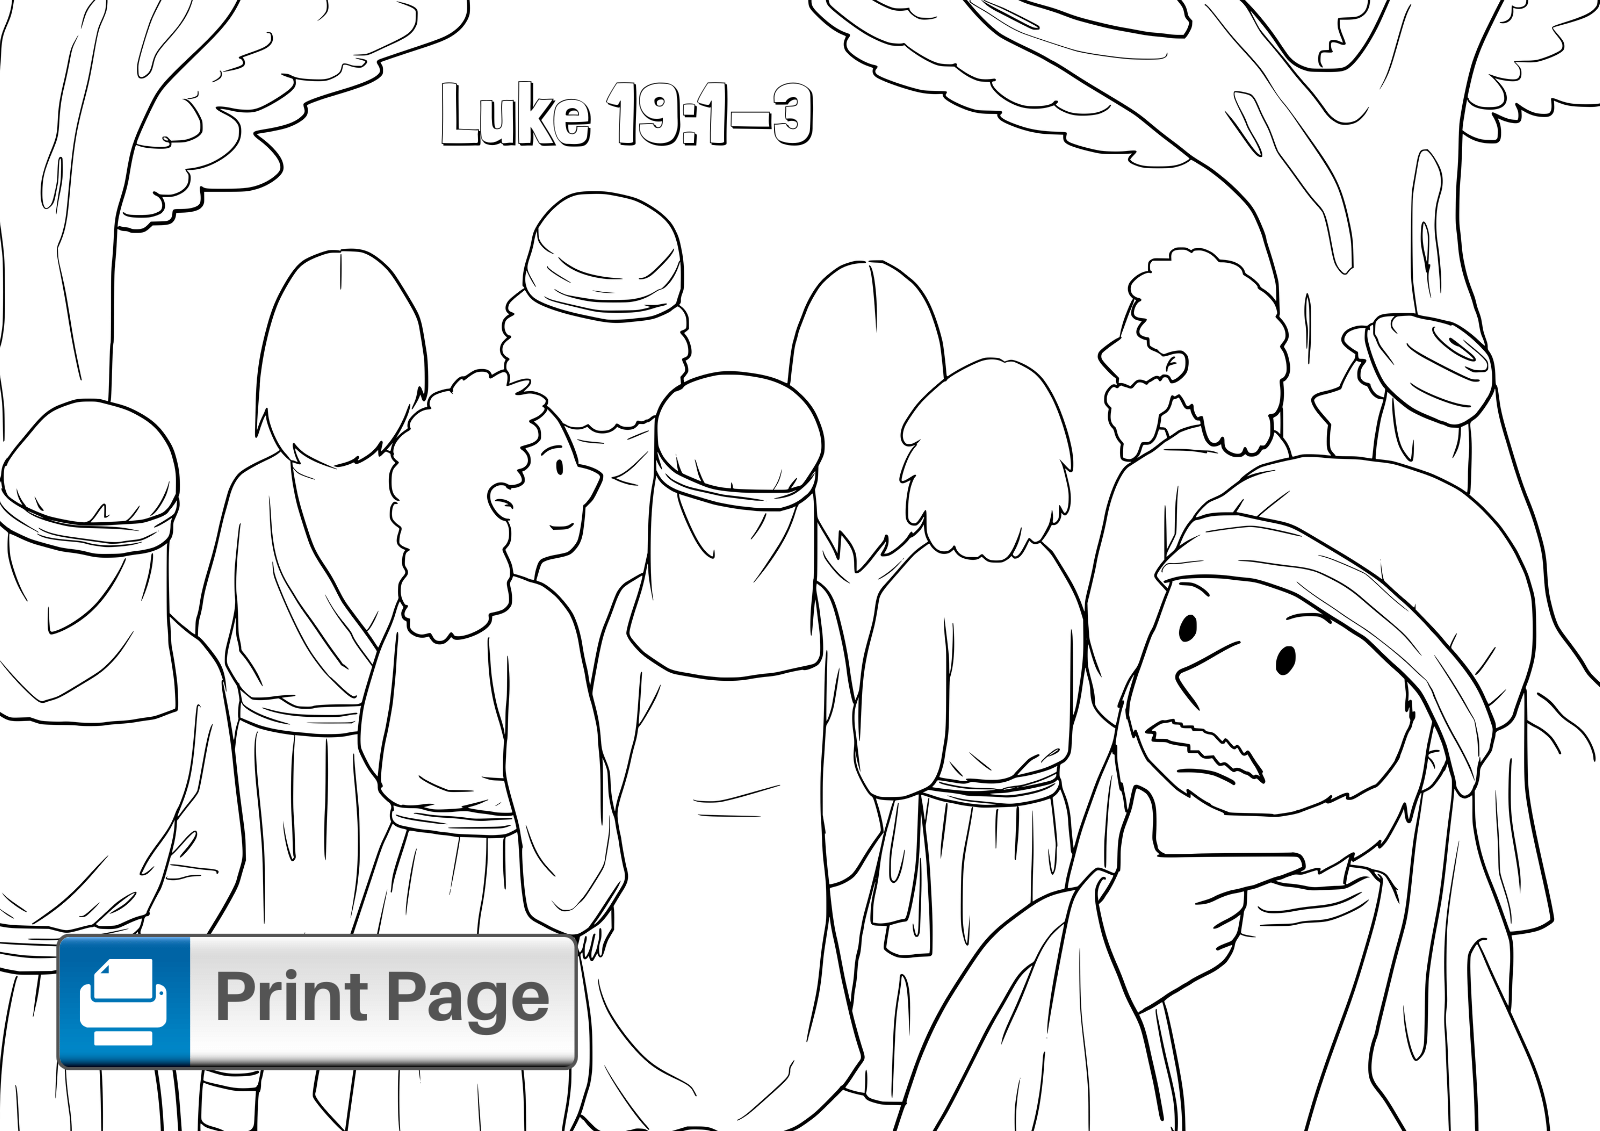 Free Printable Zacchaeus Coloring Pages for Kids